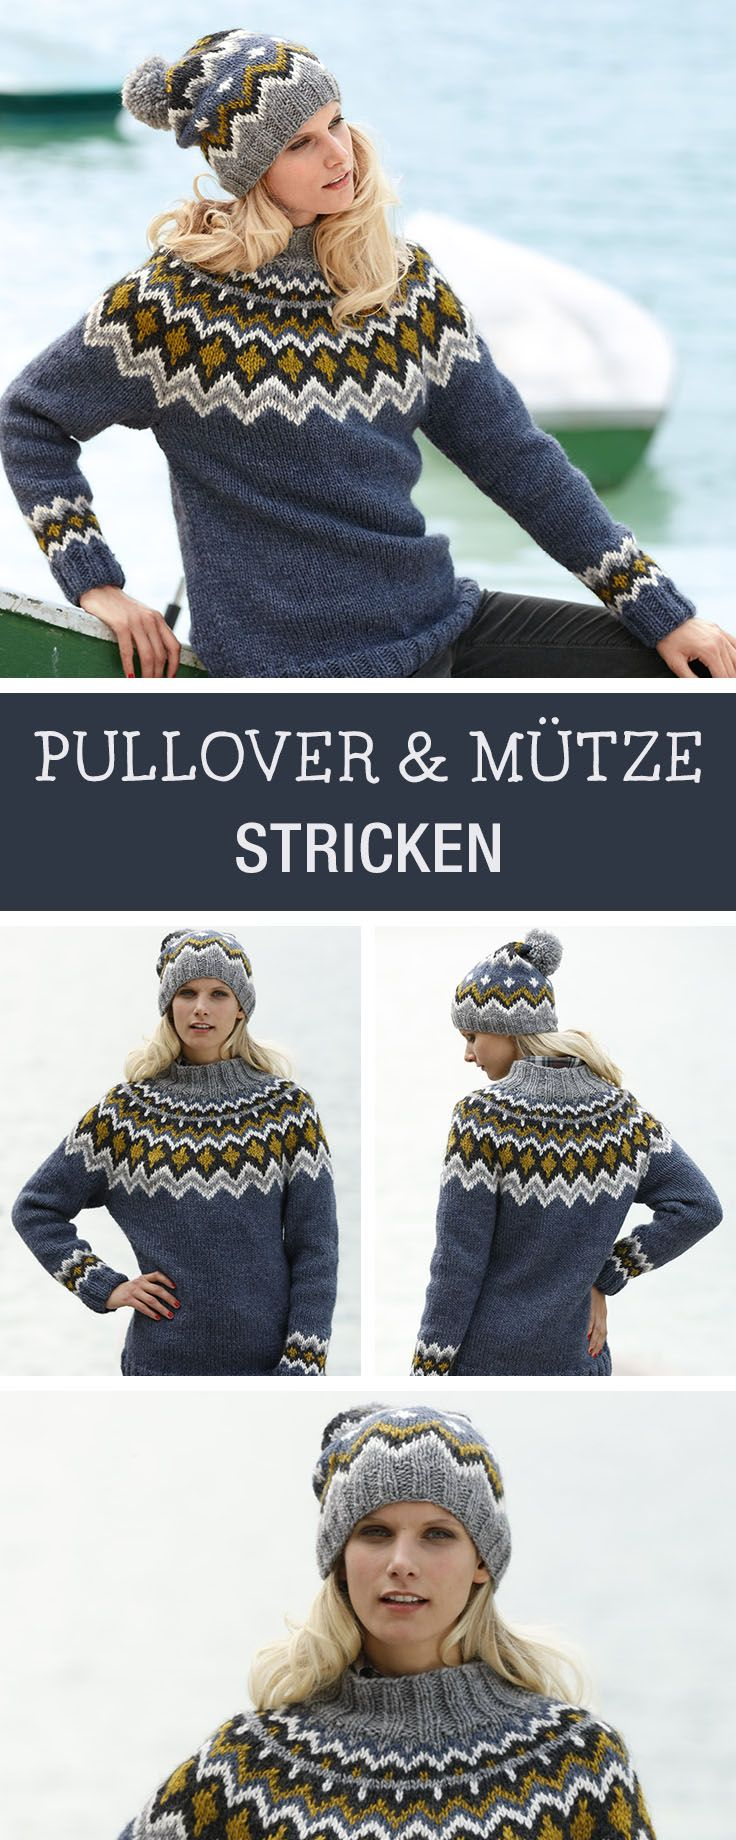 DIY-Anleitung: Pullover mit Jacquard-Muster stricken, Muster stricken / knitting diy and pattern: how to knit a pullover with jacquard pattern via DaWanda.com